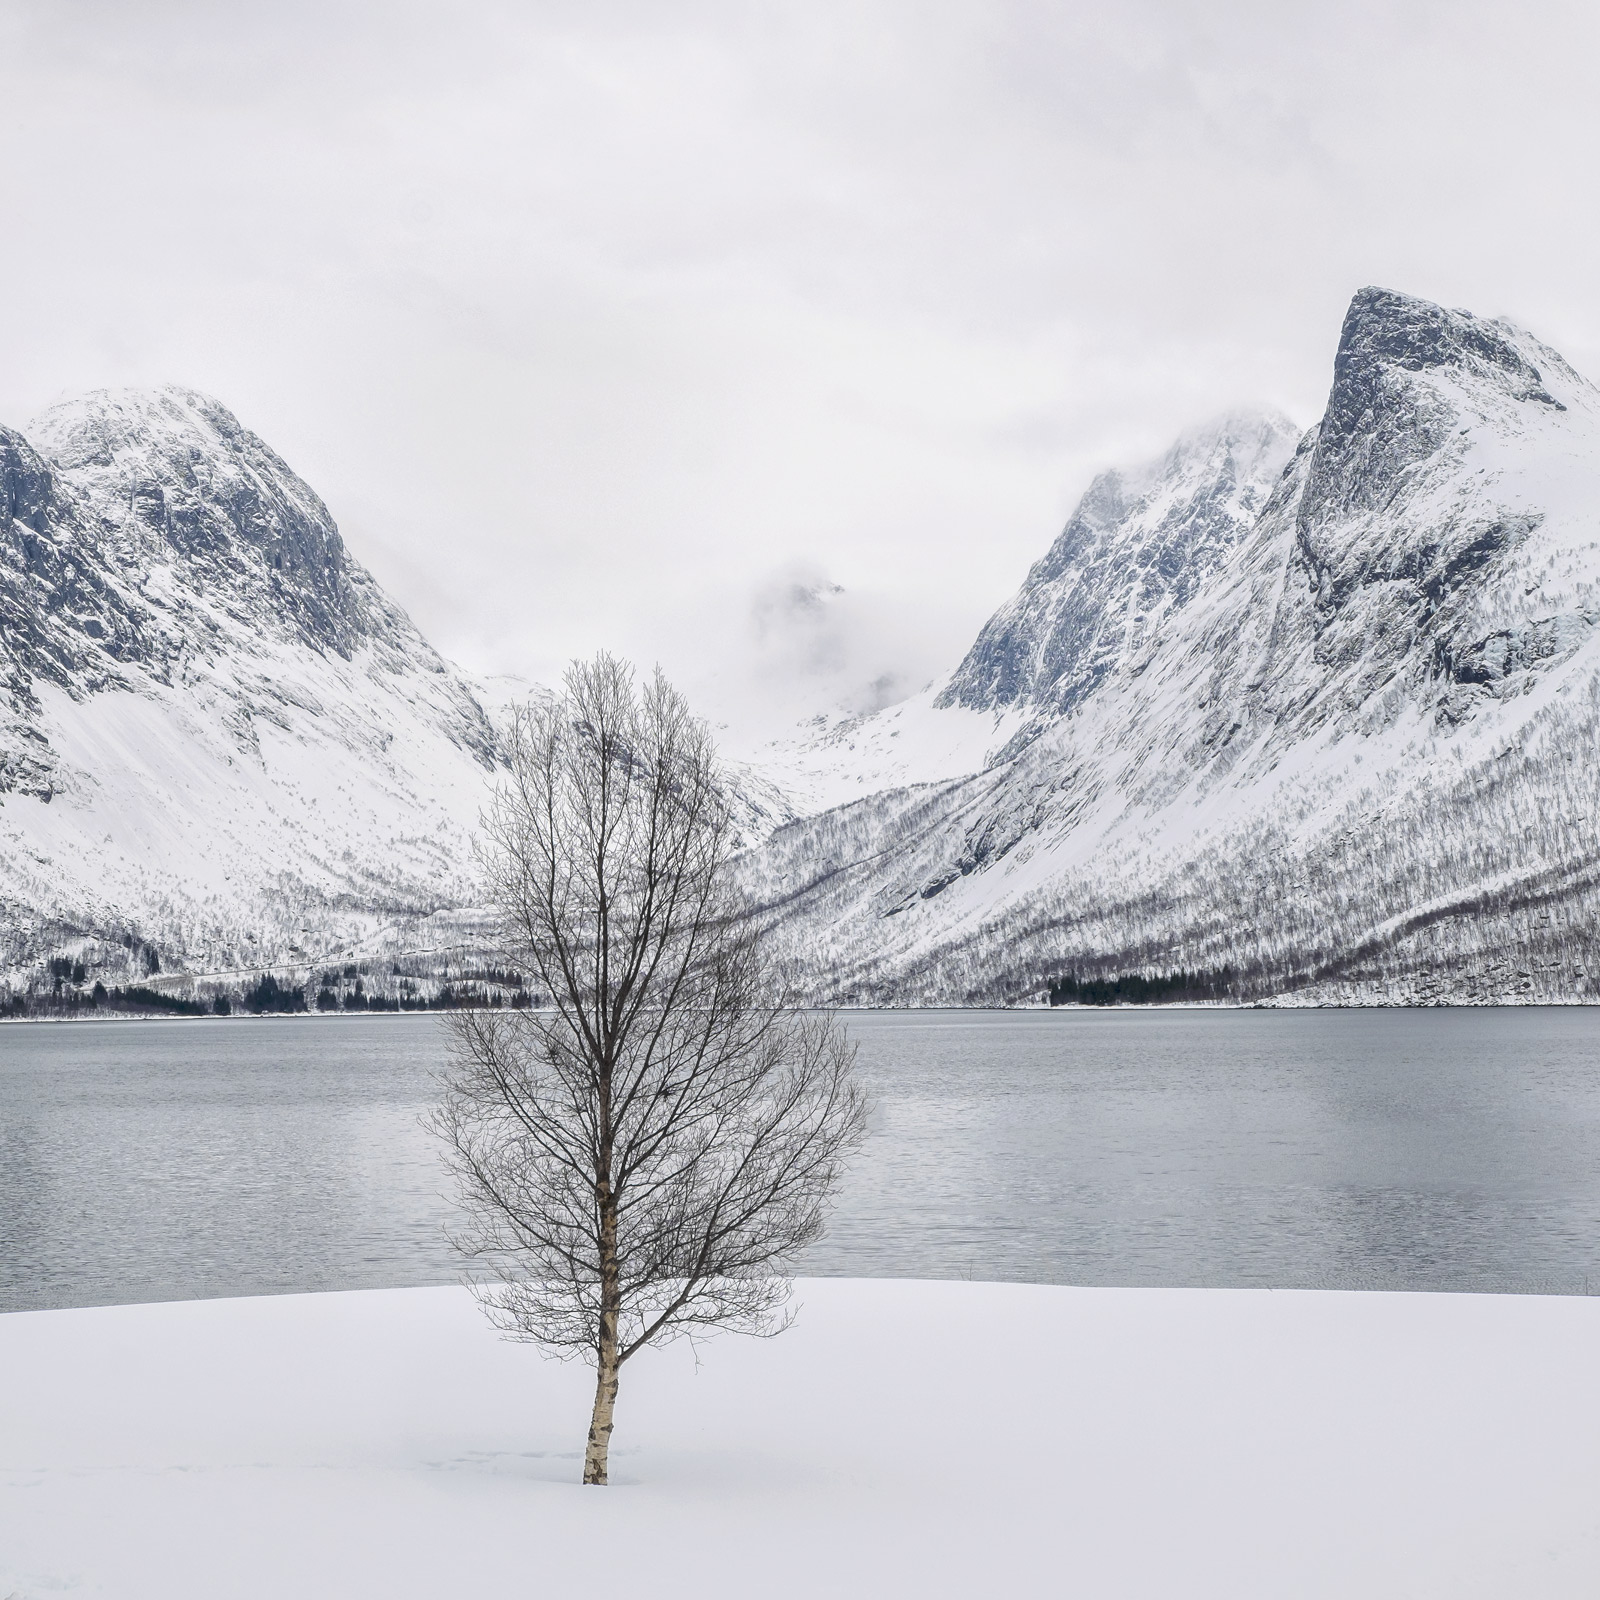 Senja Cube, Bergsbotn, Senja, Norway, favourites, magnificent, rugged, mountains, blasted, delicate, birch, fragility, l, photo